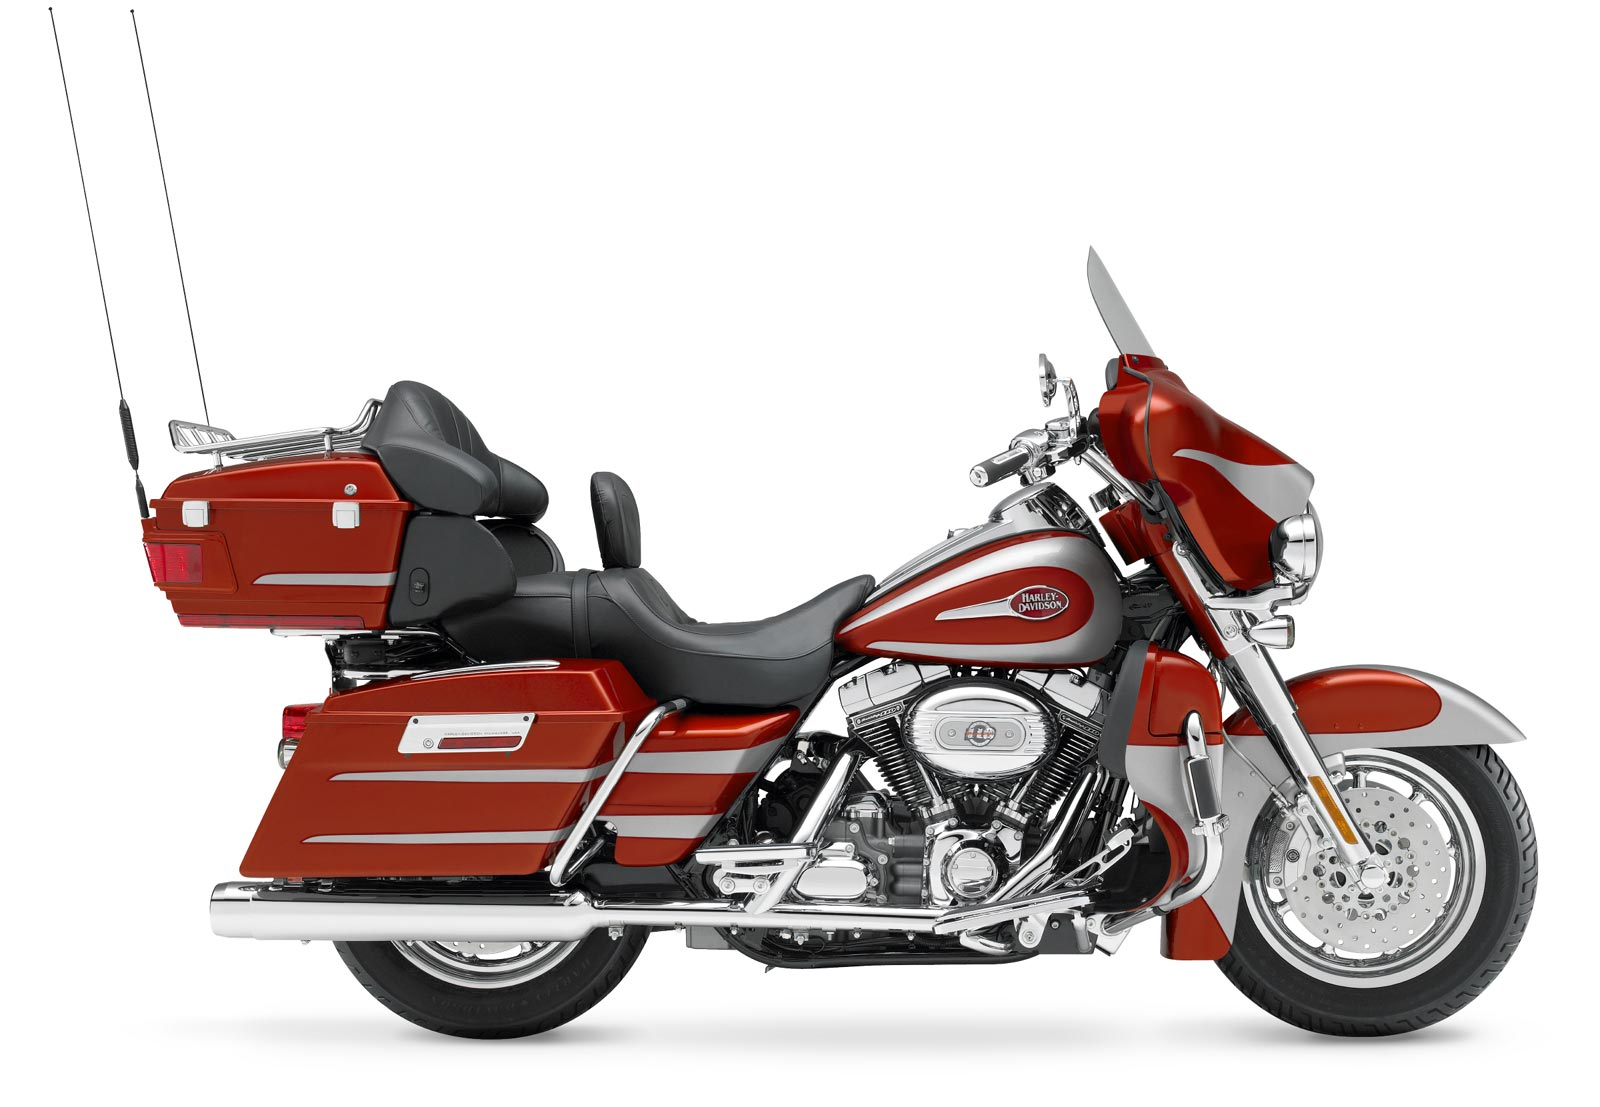 2008 harley davidson flhtcuse3 screamin eagle ultra classic electra rh totalmotorcycle com 2009 harley davidson ultra classic owners manual pdf 2009 ultra classic service manual download